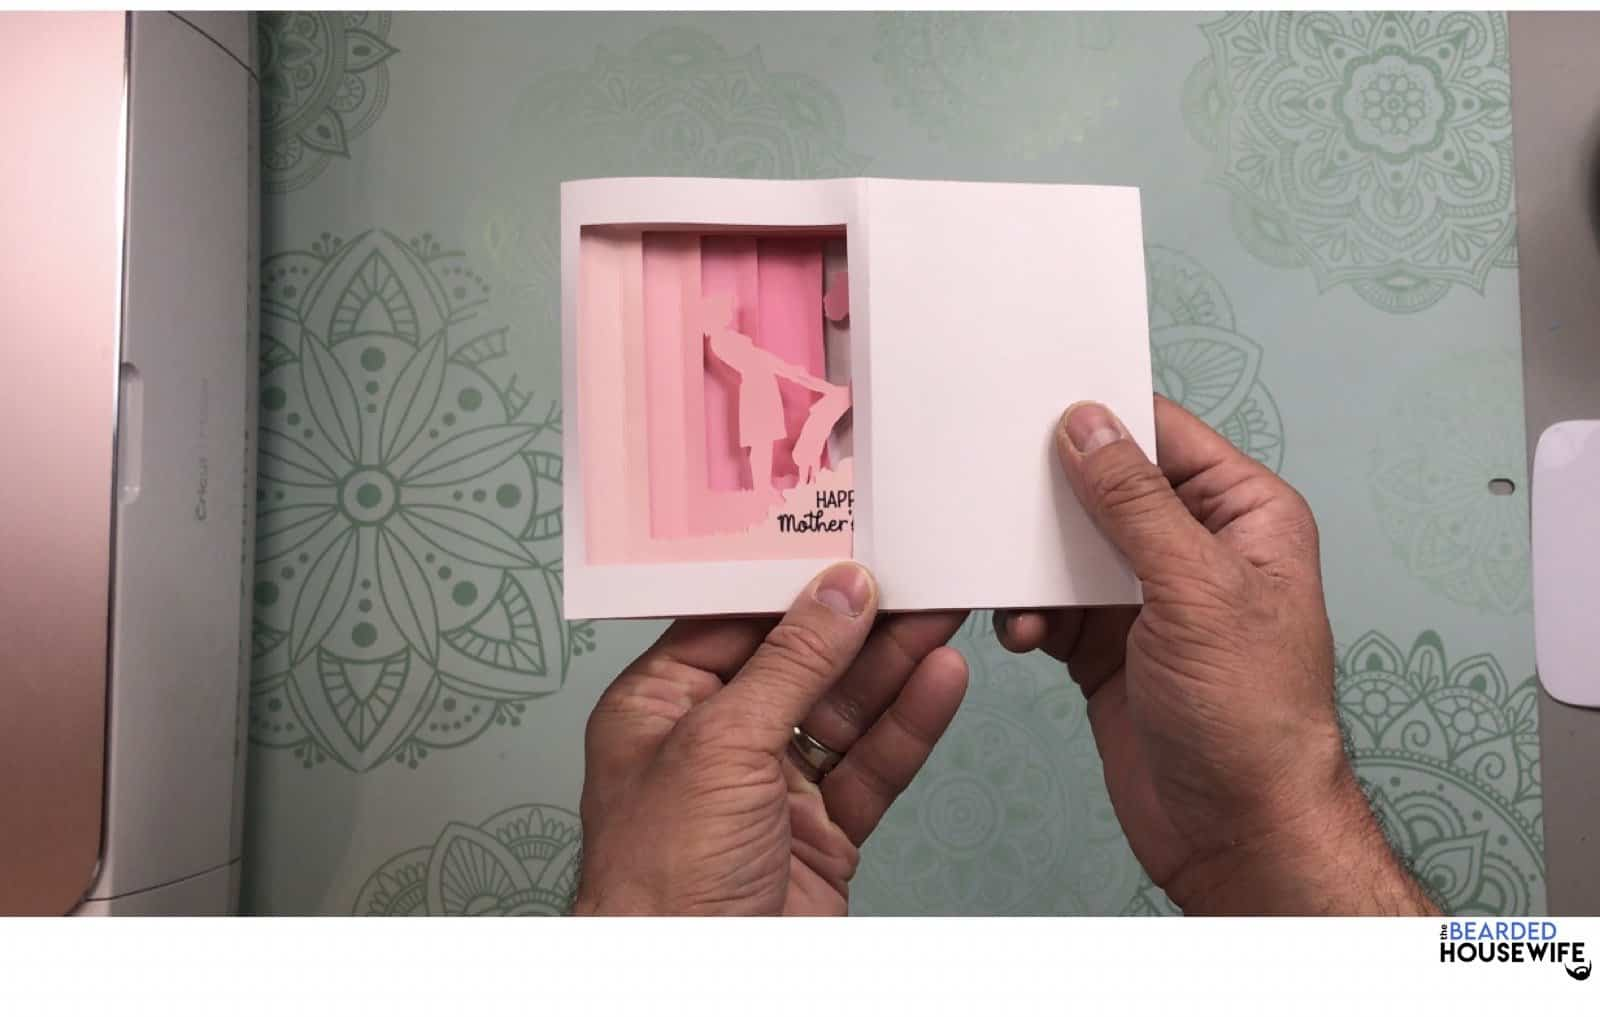 fold the card to the left to place into the envelope